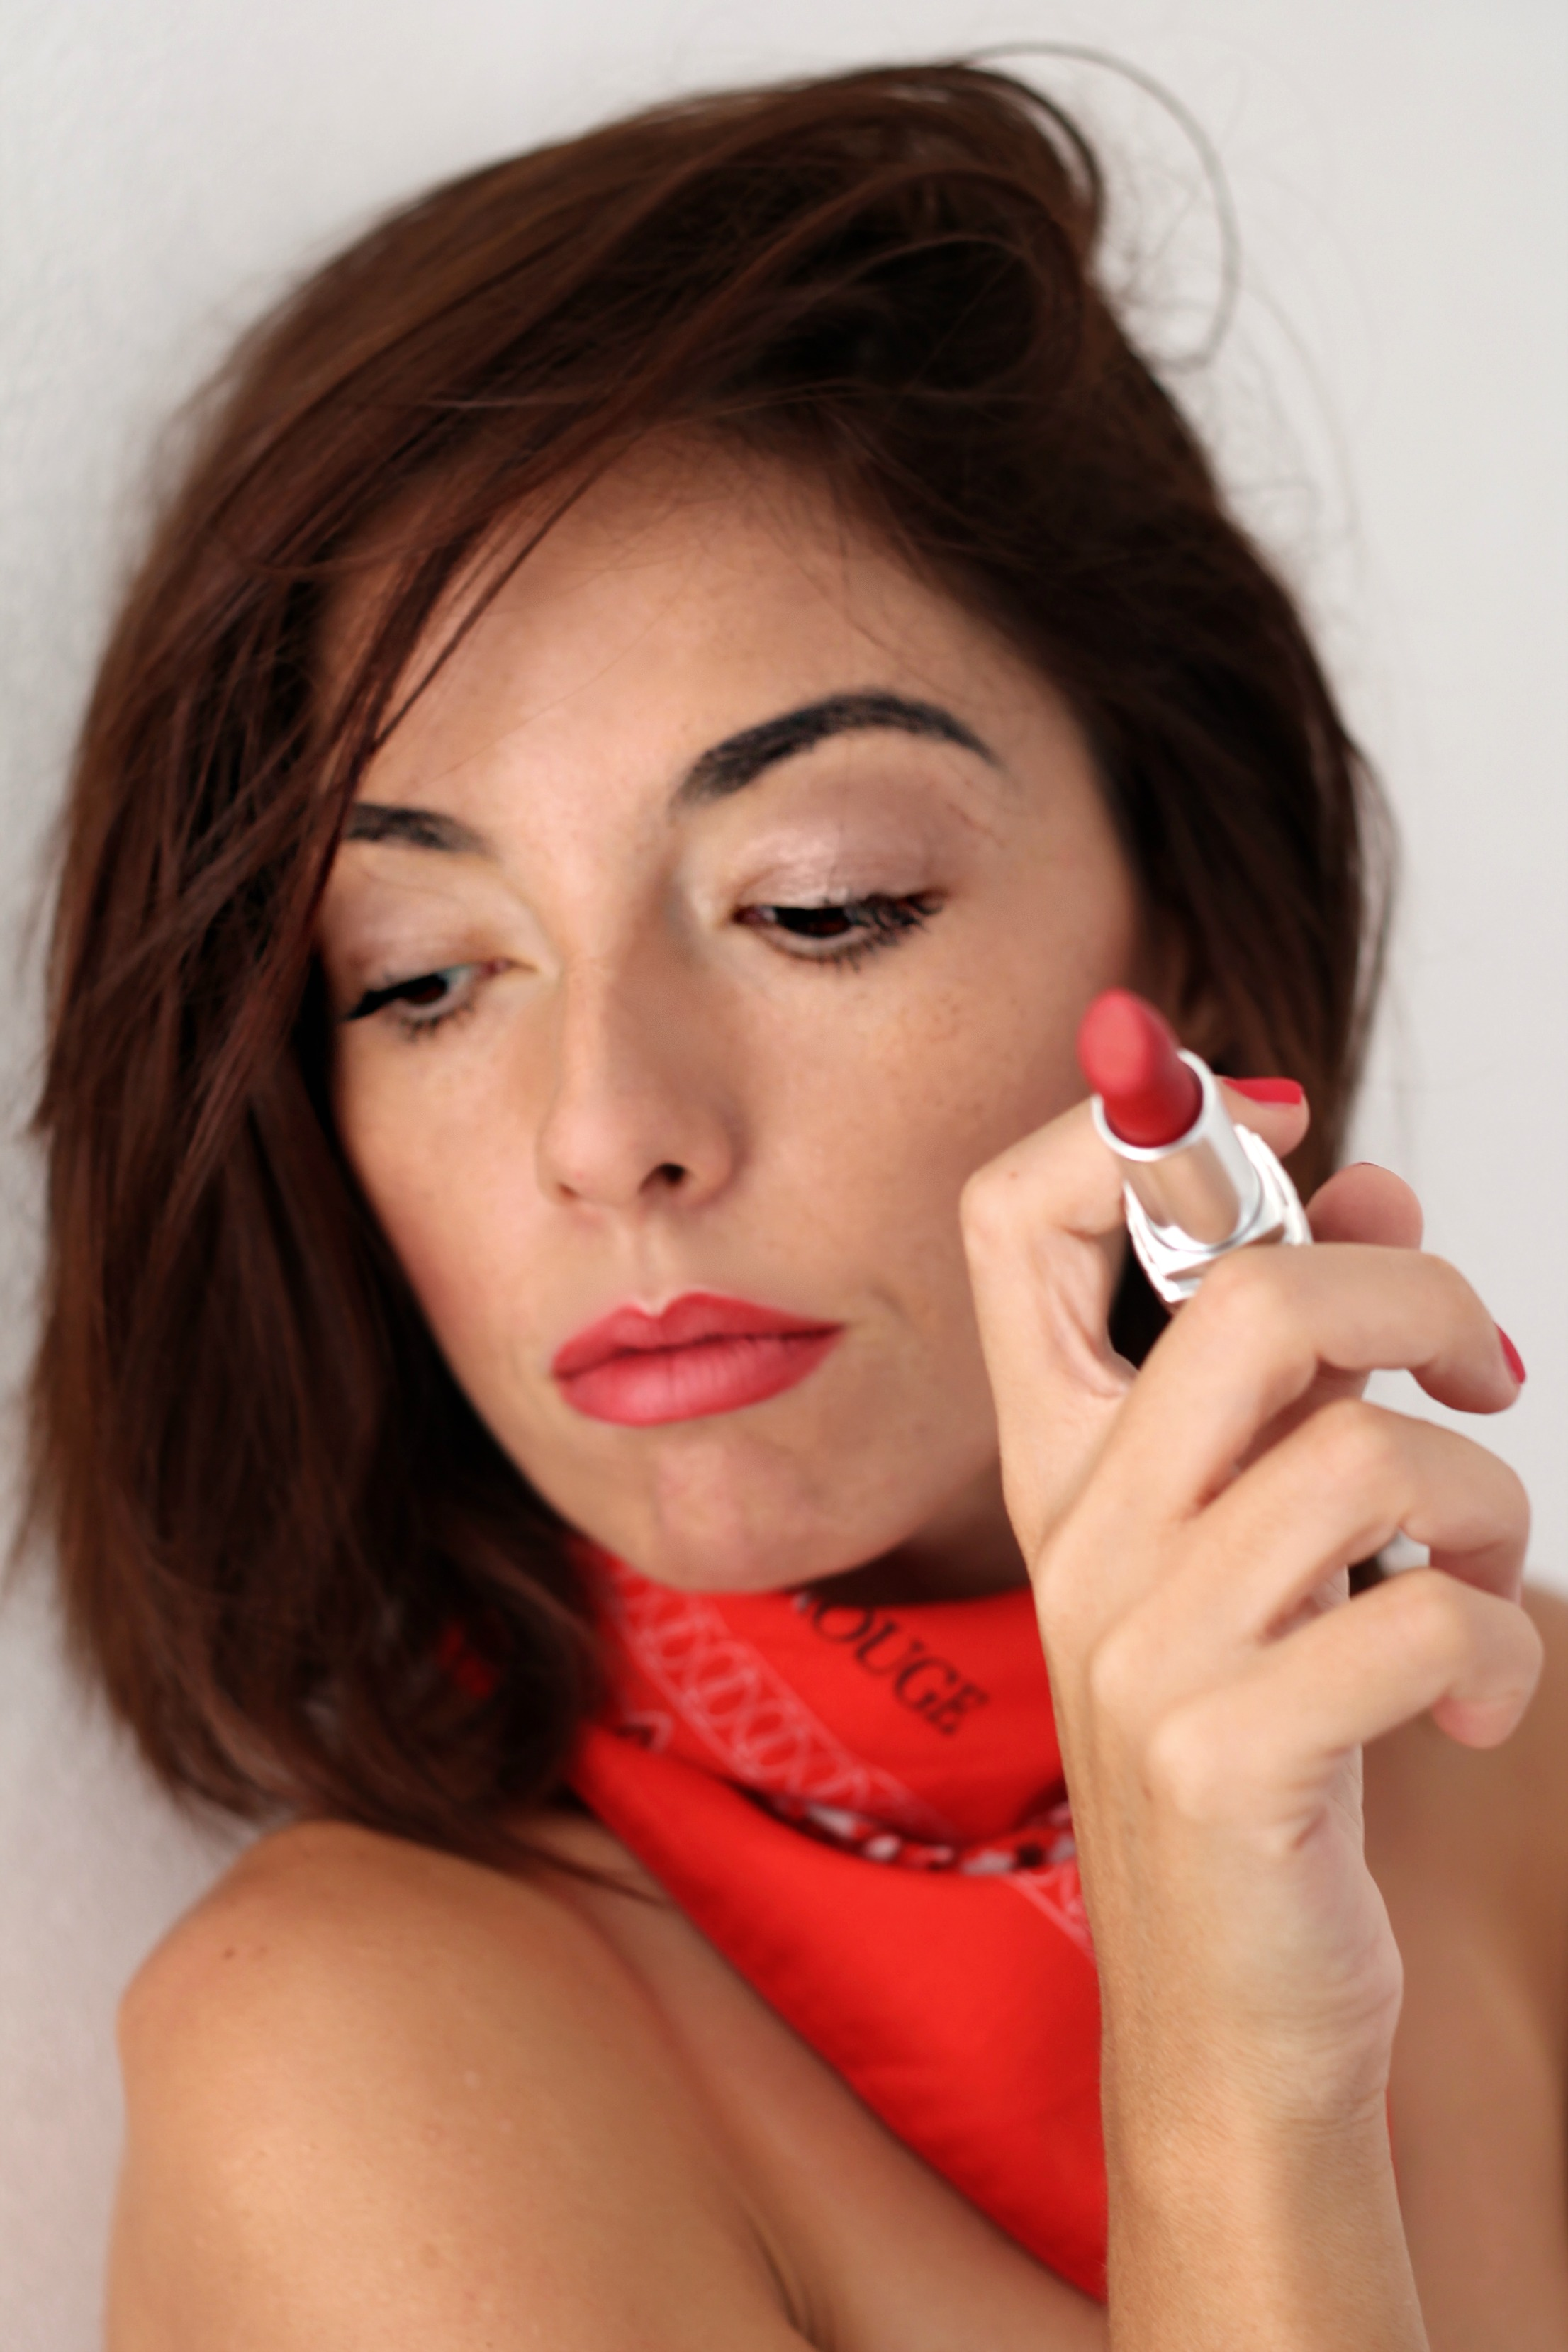 Che rossetto mettere, rouge dior liquid, rouge dior double rouge, theladycracy.it, elisa bellino, fashion blog italia 2017, blogger moda 2017, blog moda 2017, theladycracy.it, elisa bellino, rossetti autunno inverno 2017, fashion blogger milano 2017, blogger moda più famosi 2017, beauty blogger 2017, che rossetto comprare